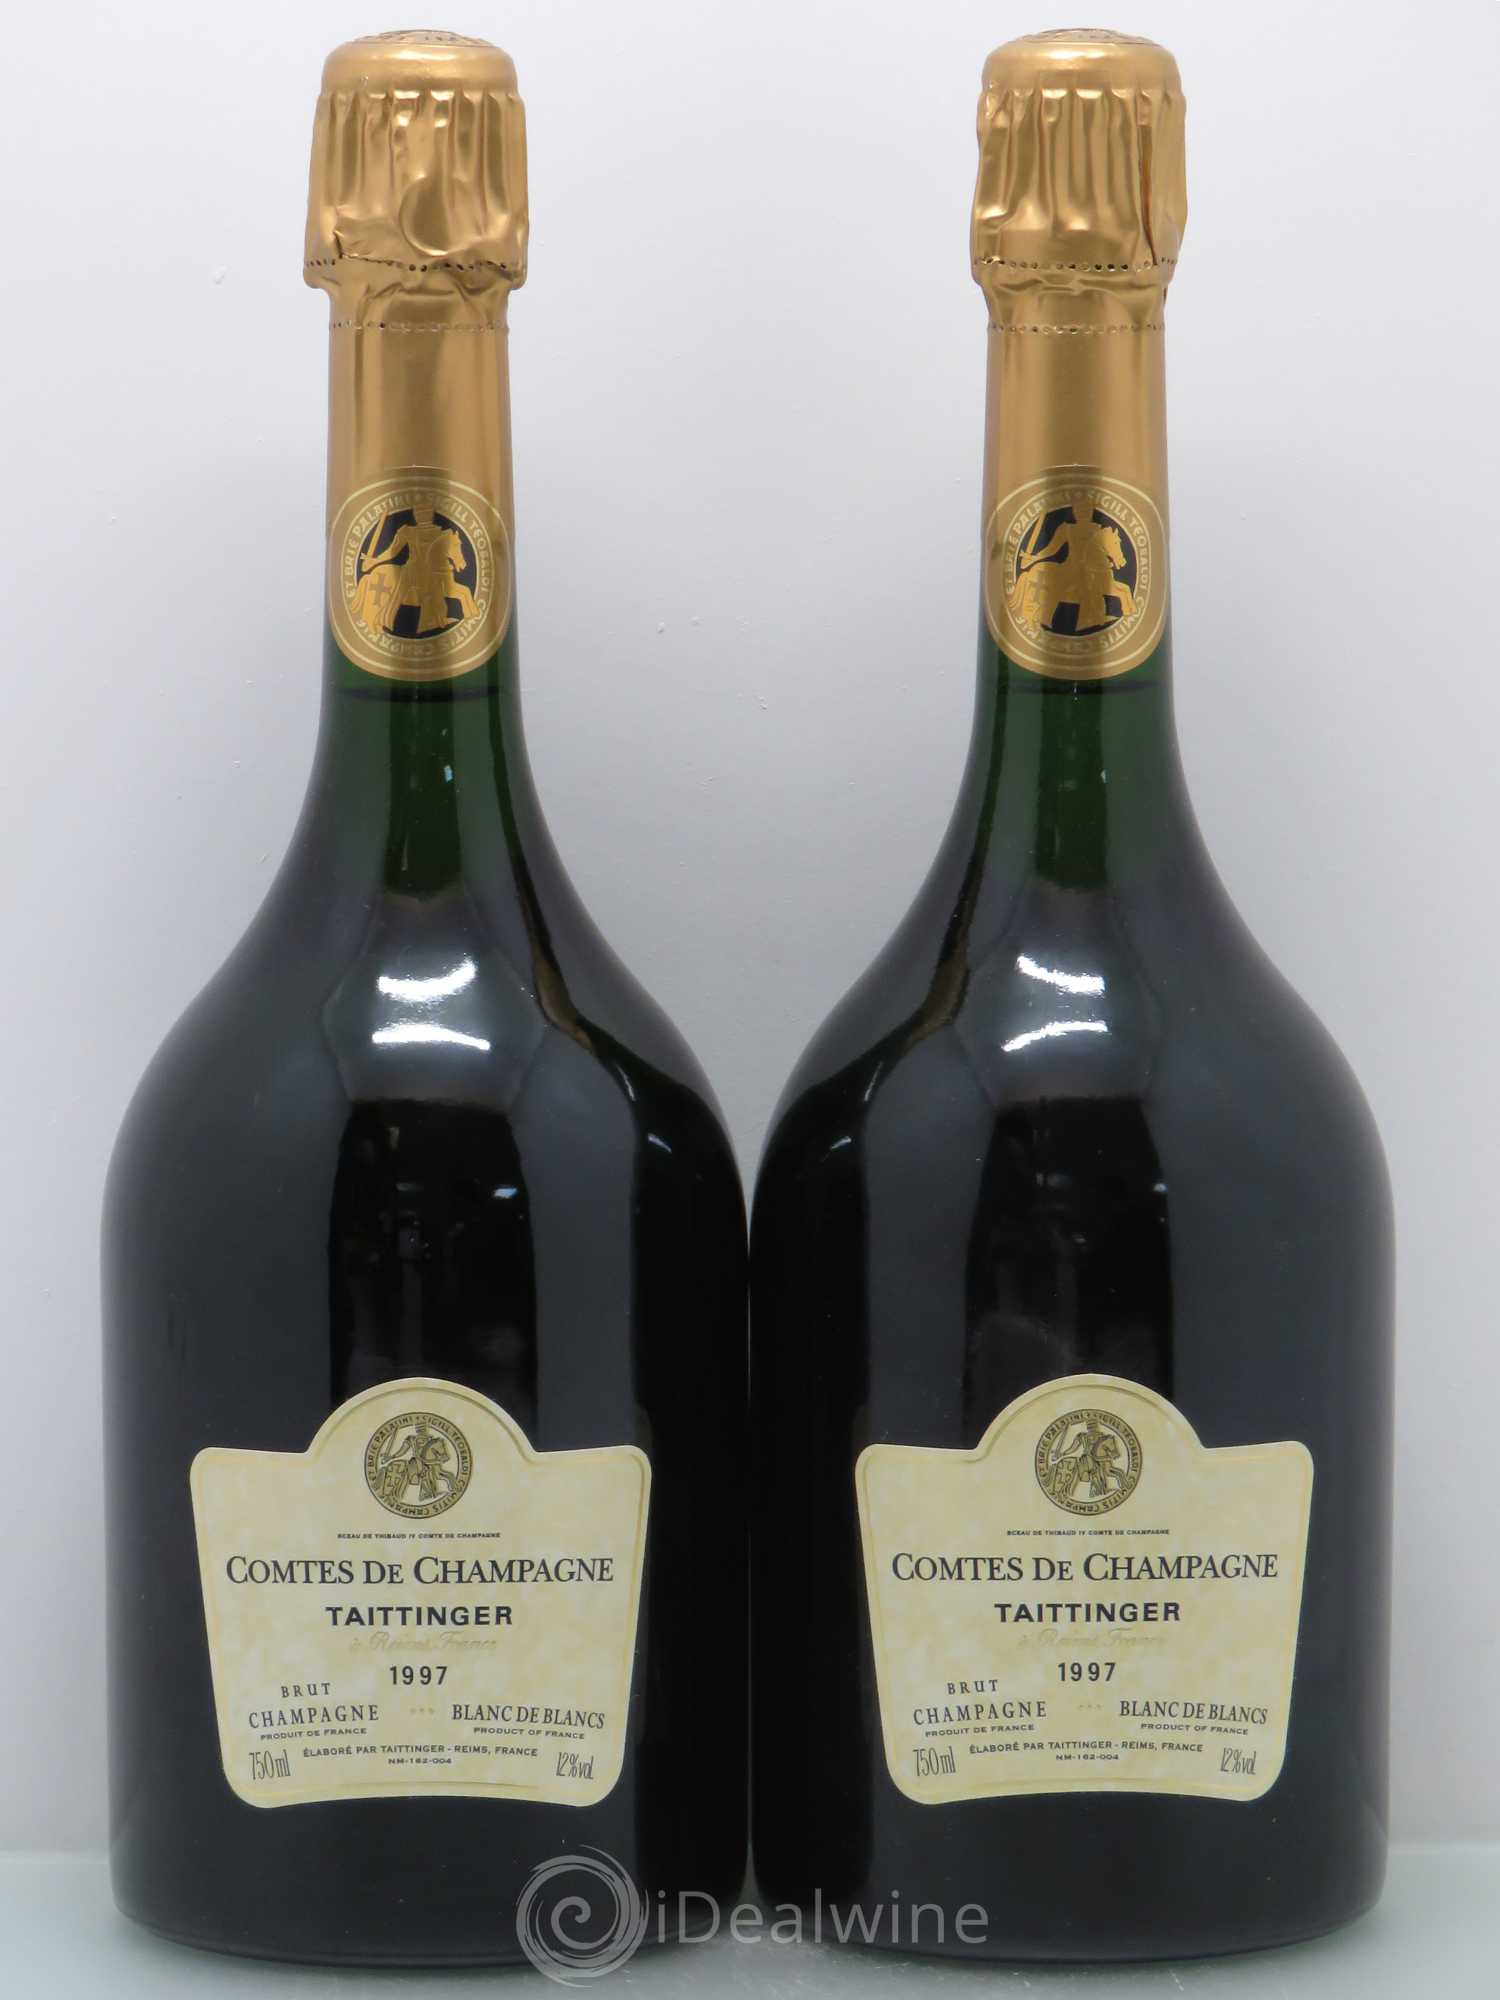 acheter comtes de champagne champagne taittinger 1997 lot 3011. Black Bedroom Furniture Sets. Home Design Ideas